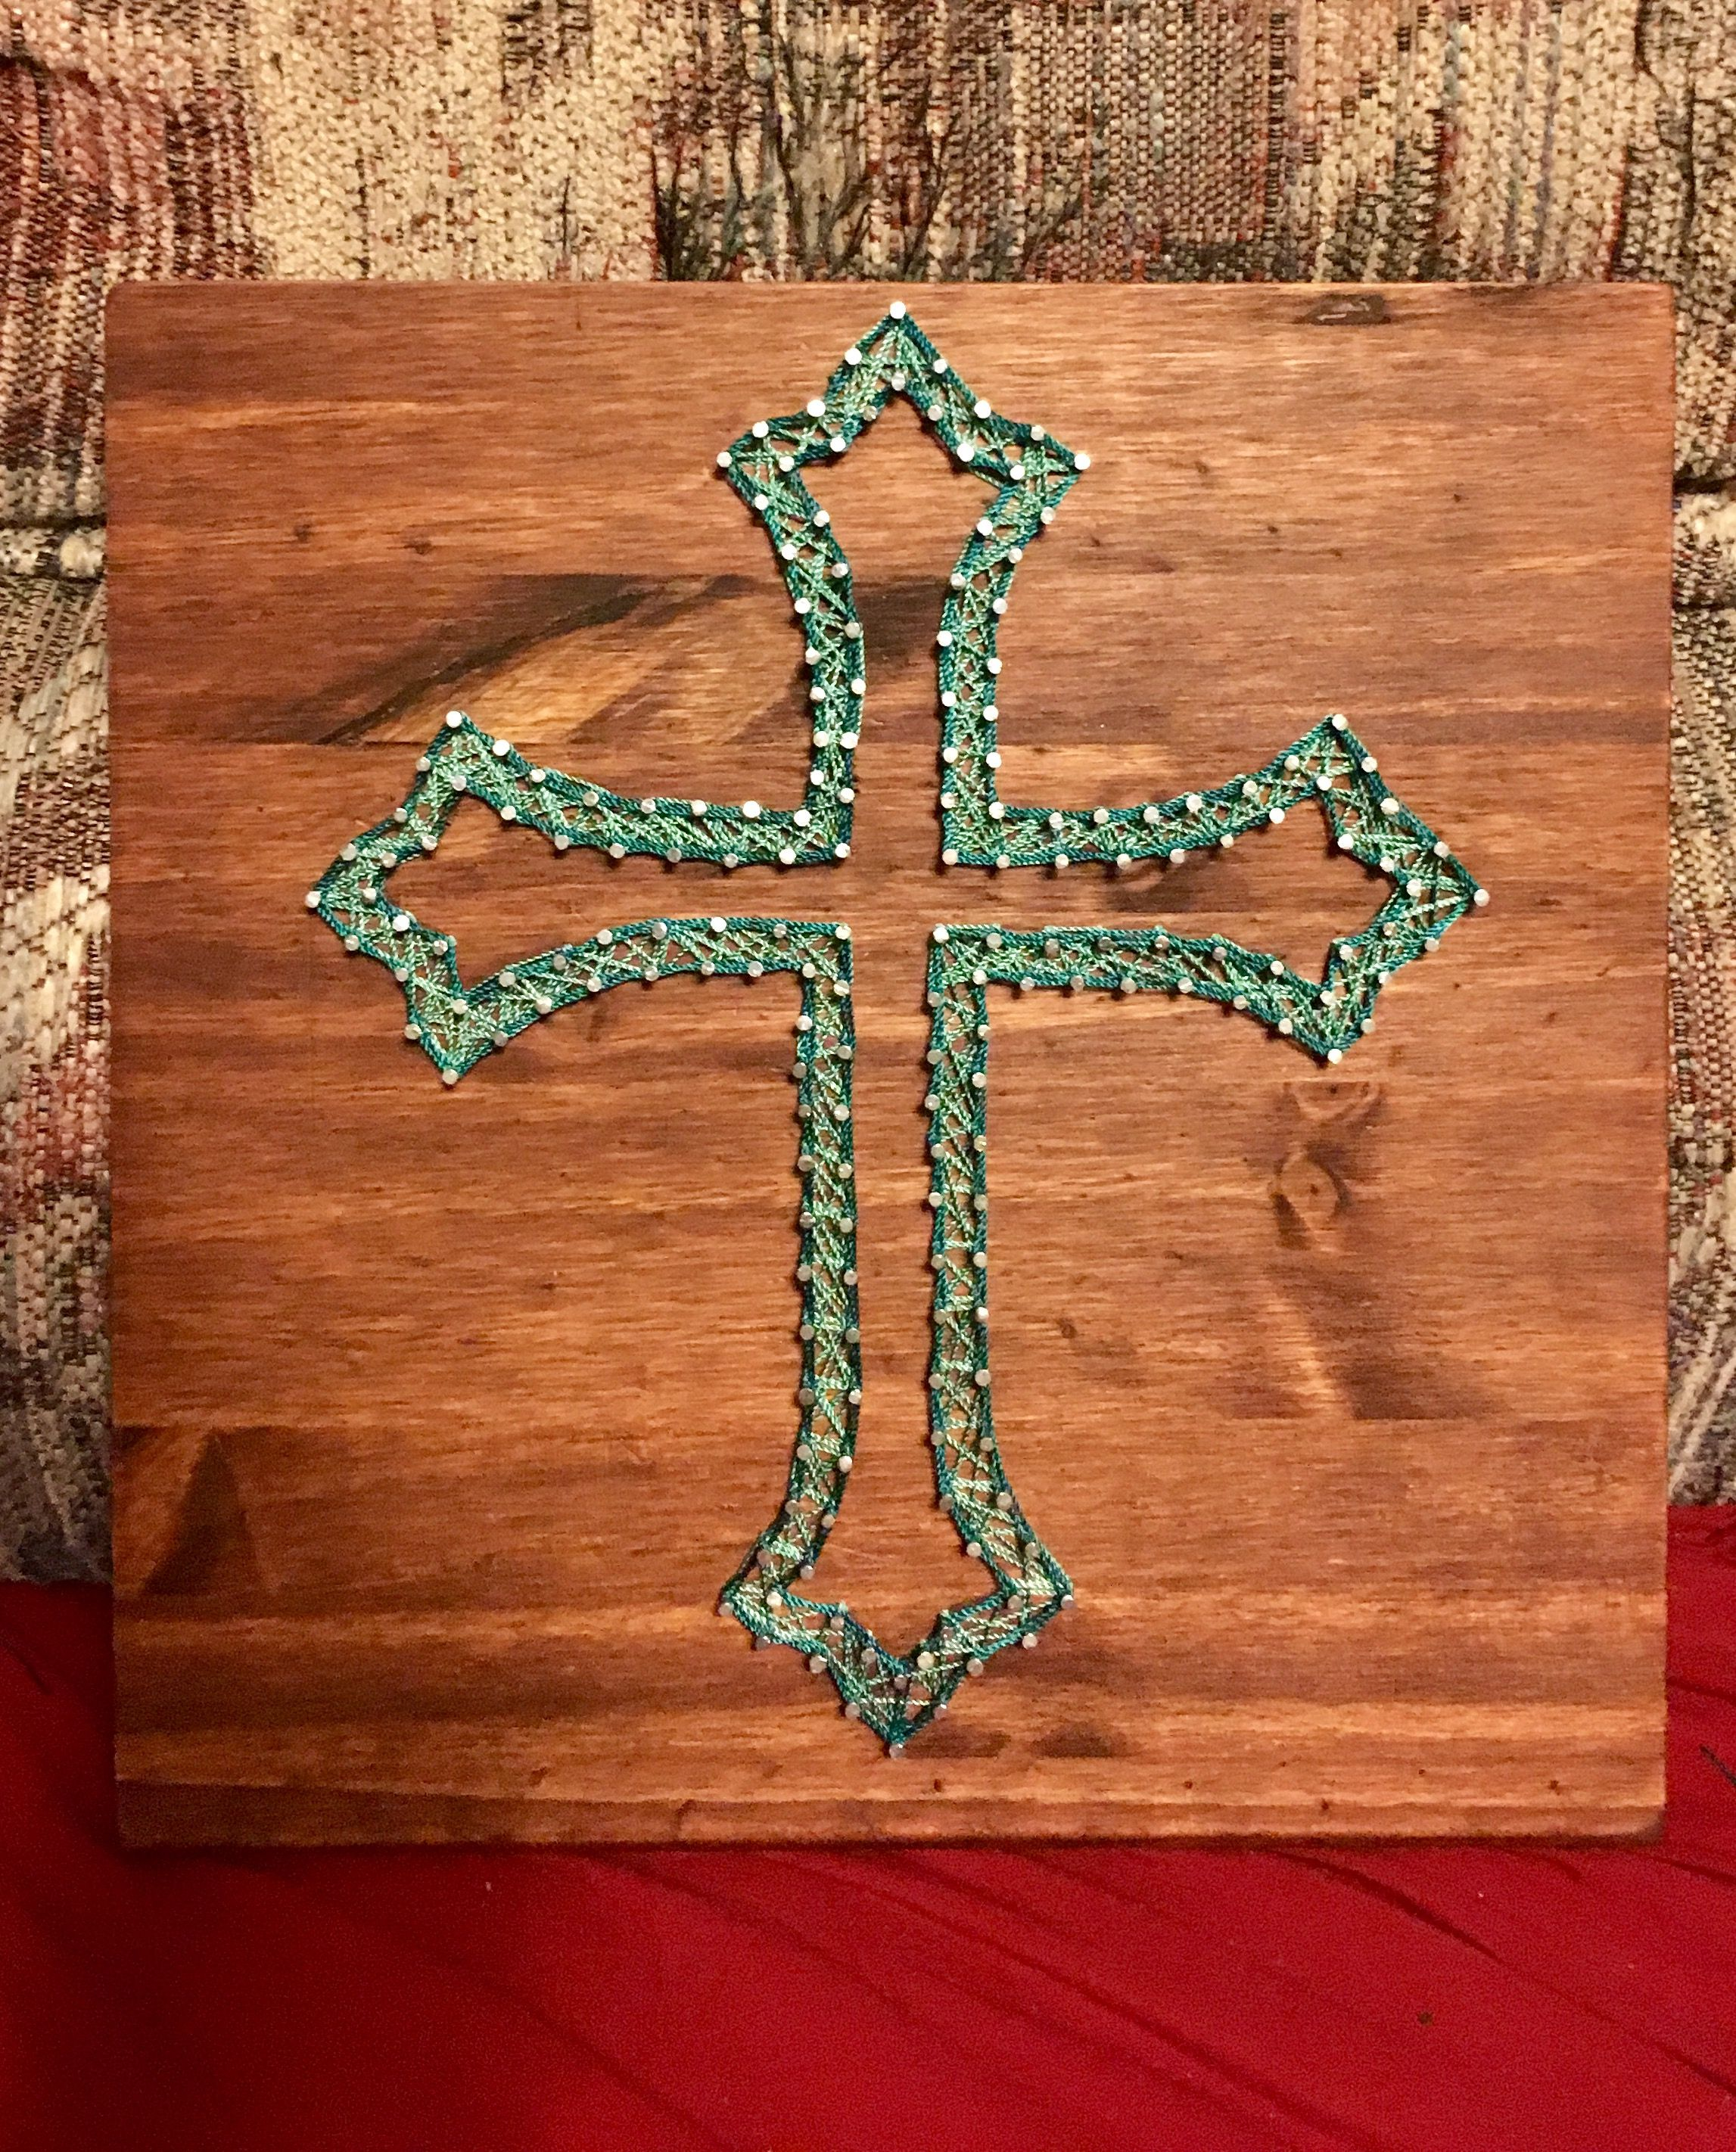 Made by me hollow cross string art nail and board outros